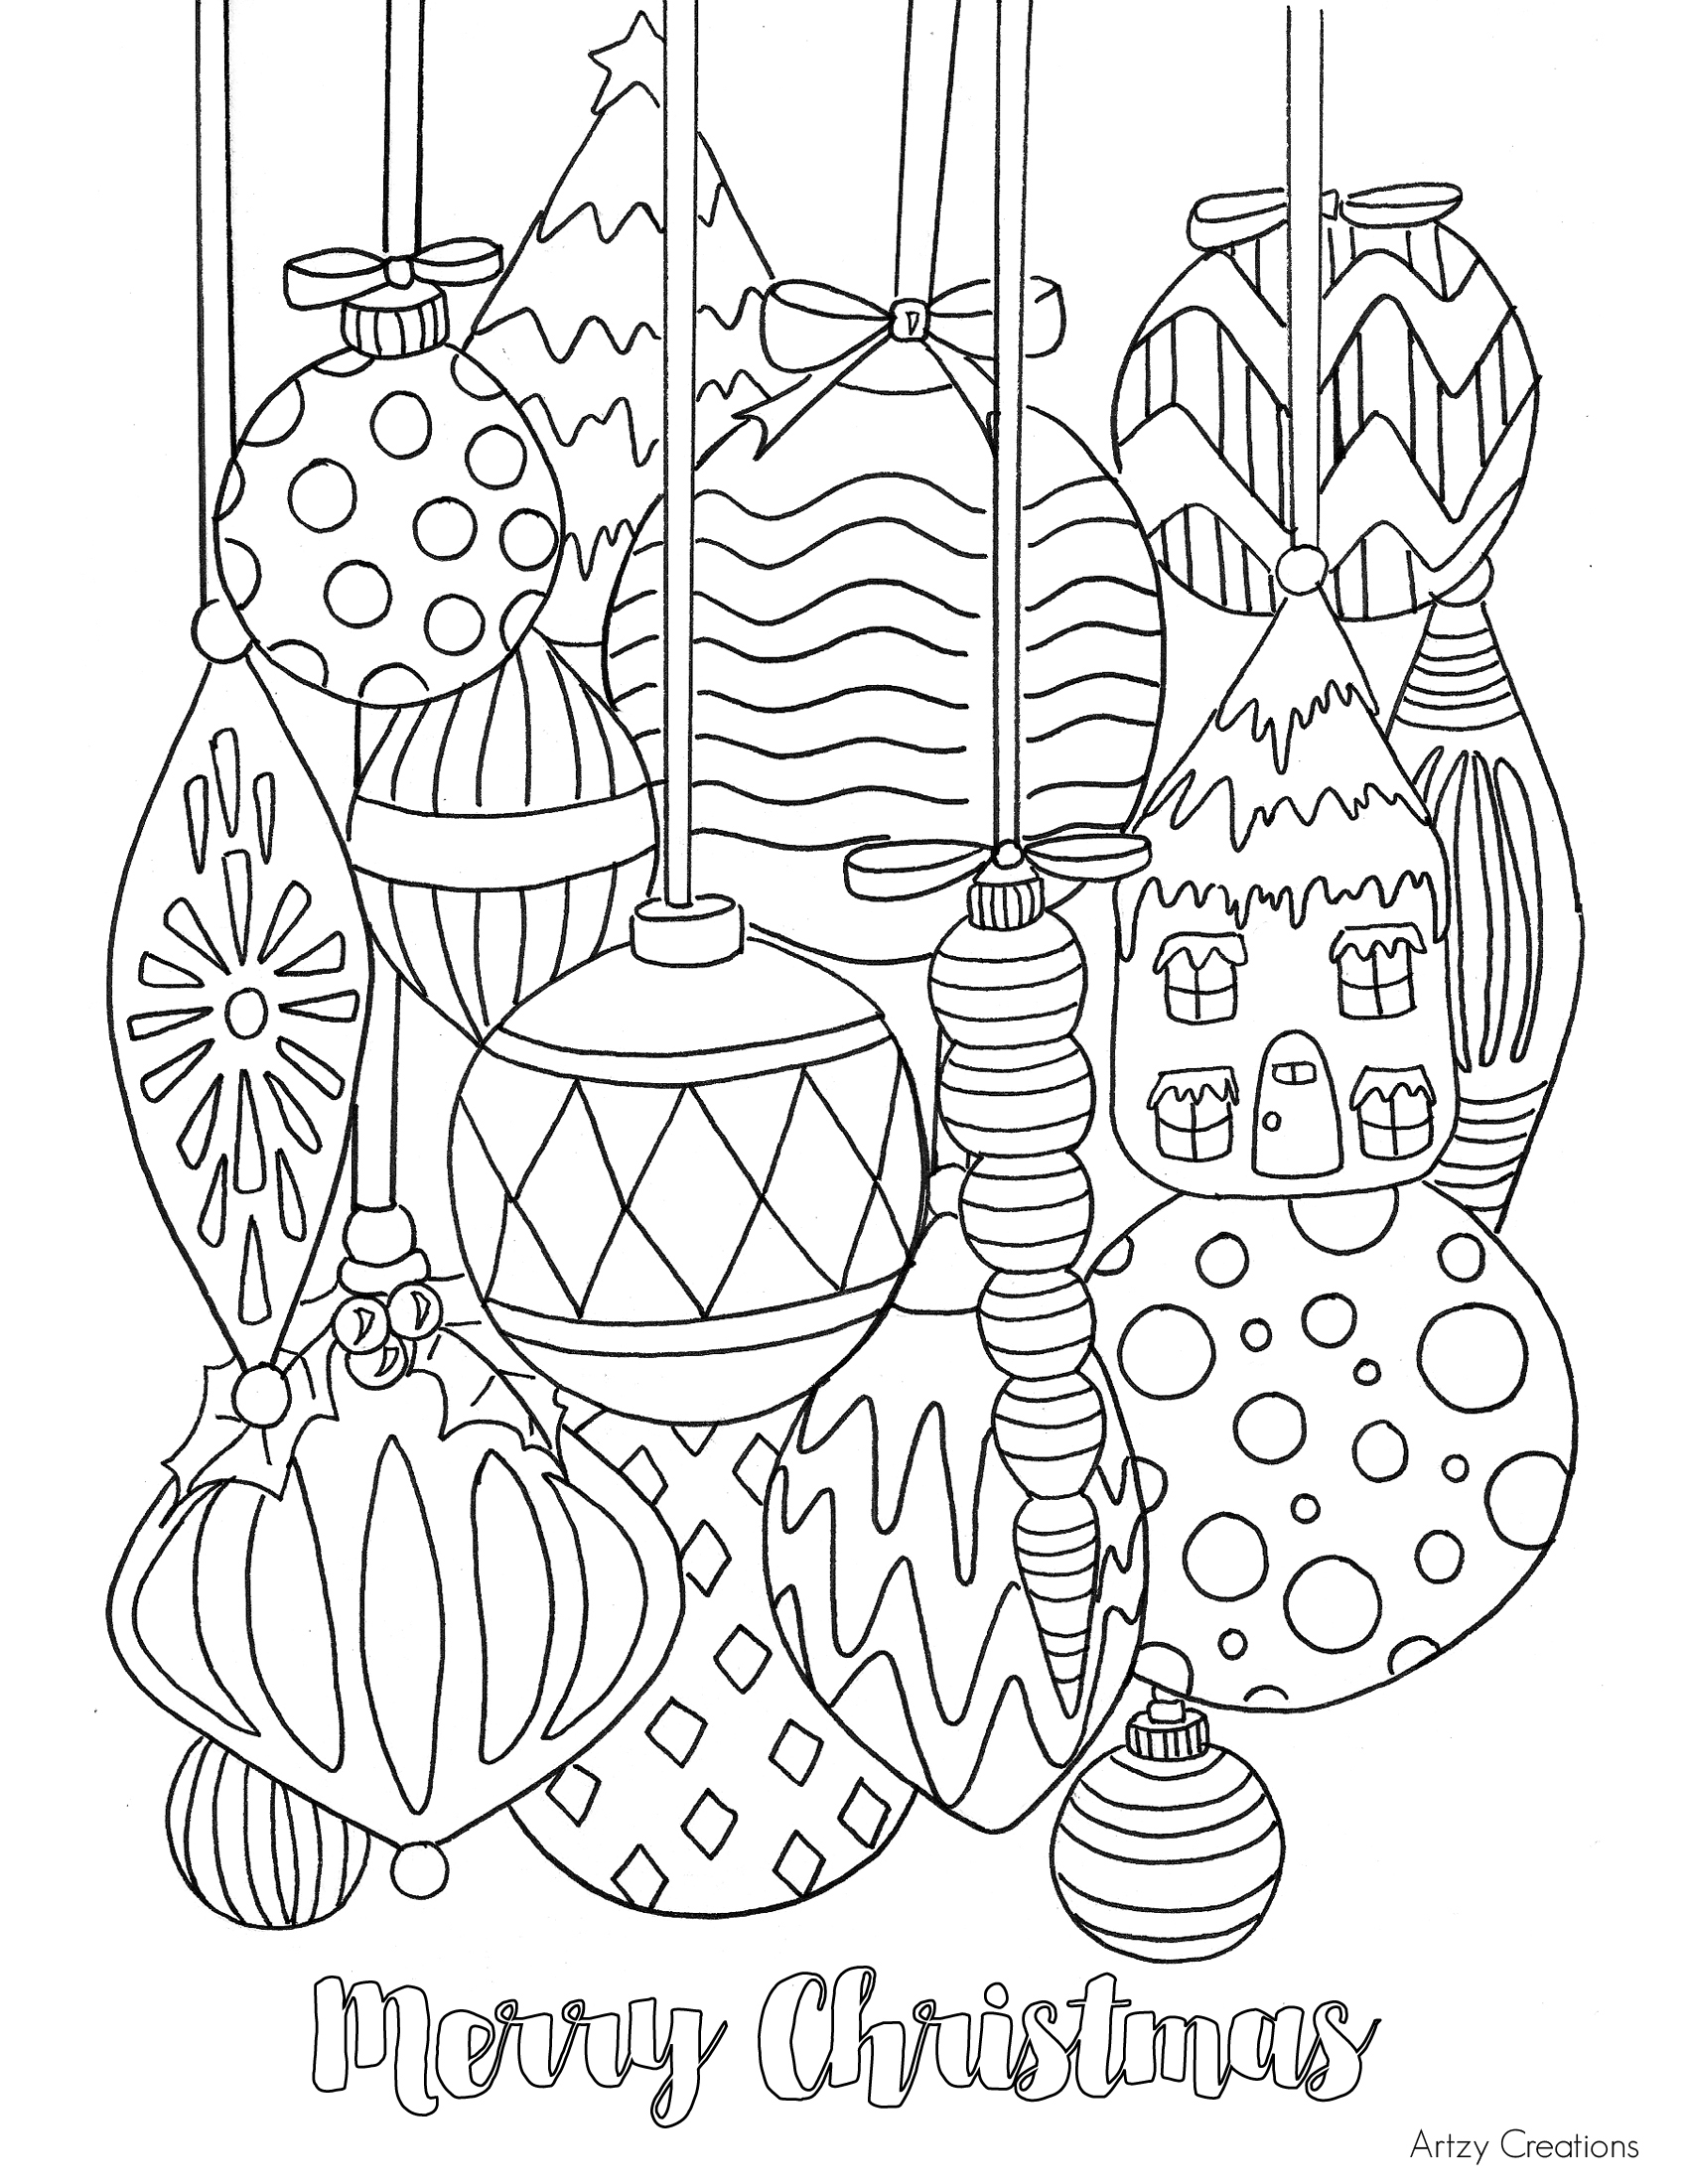 Christmas Ornaments coloring #1, Download drawings